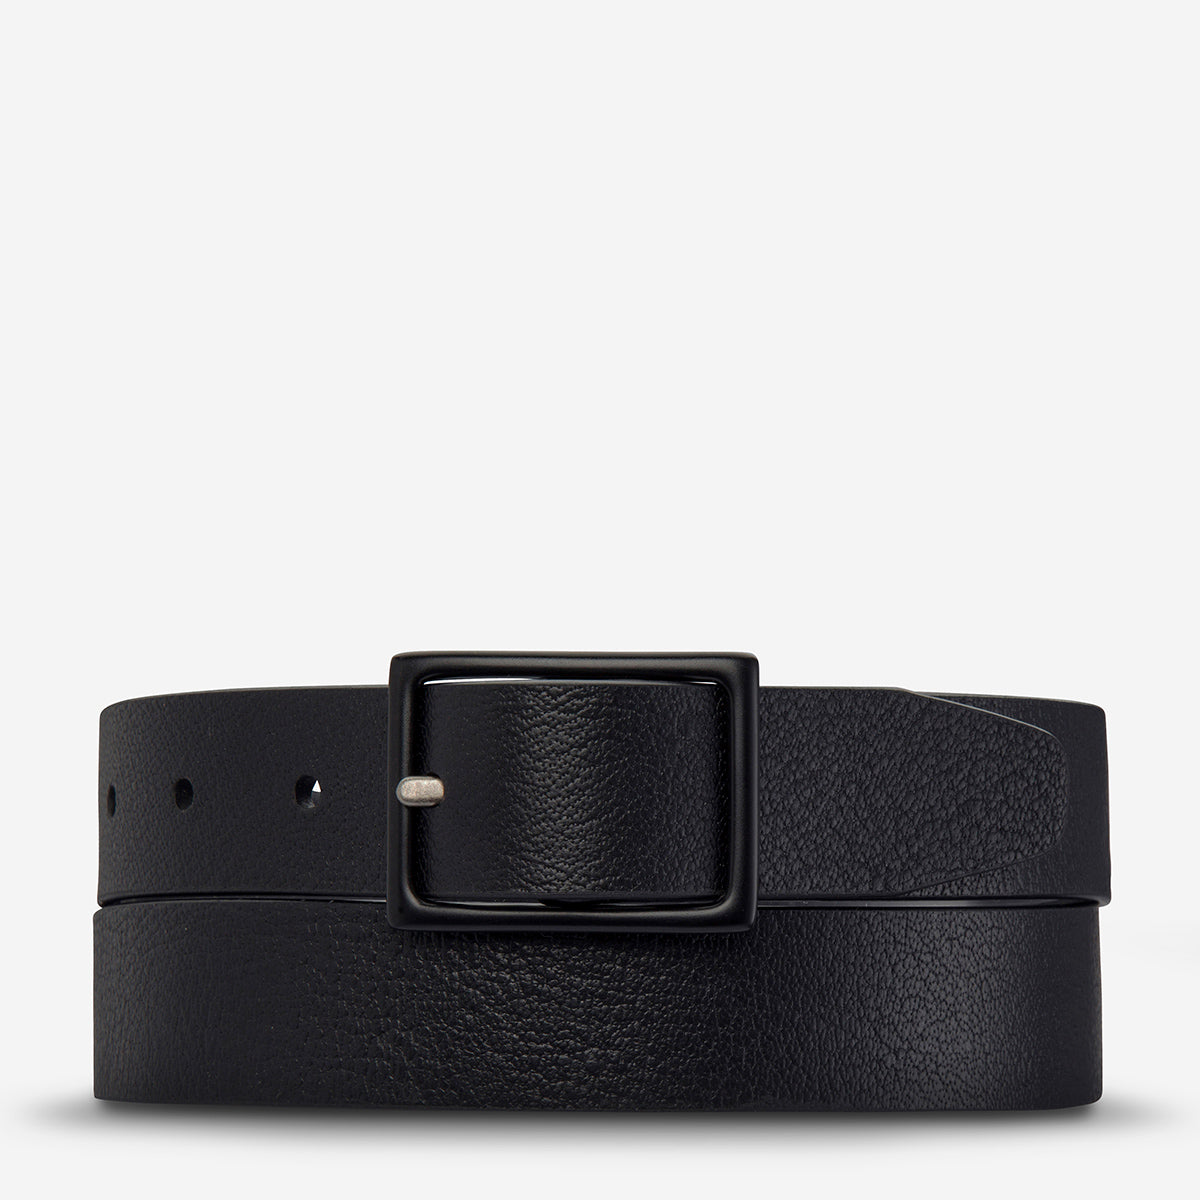 Status Anxiety Assertion Men's Leather Belt - Black